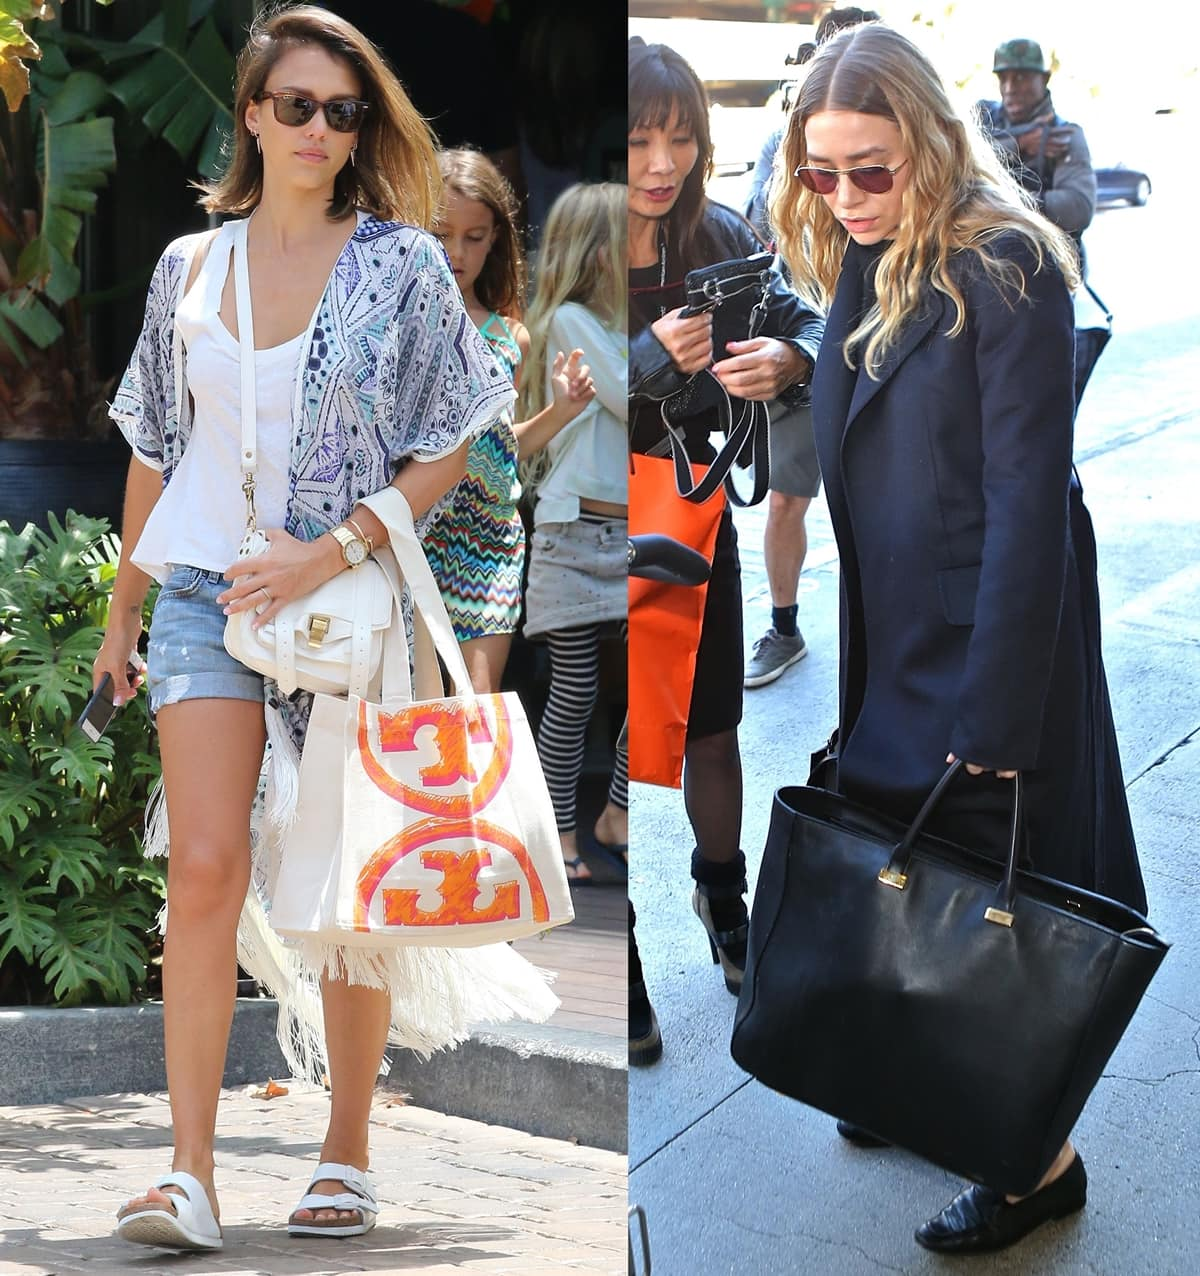 Jessica Alba and Ashley Olsen carry Tory Burch bags